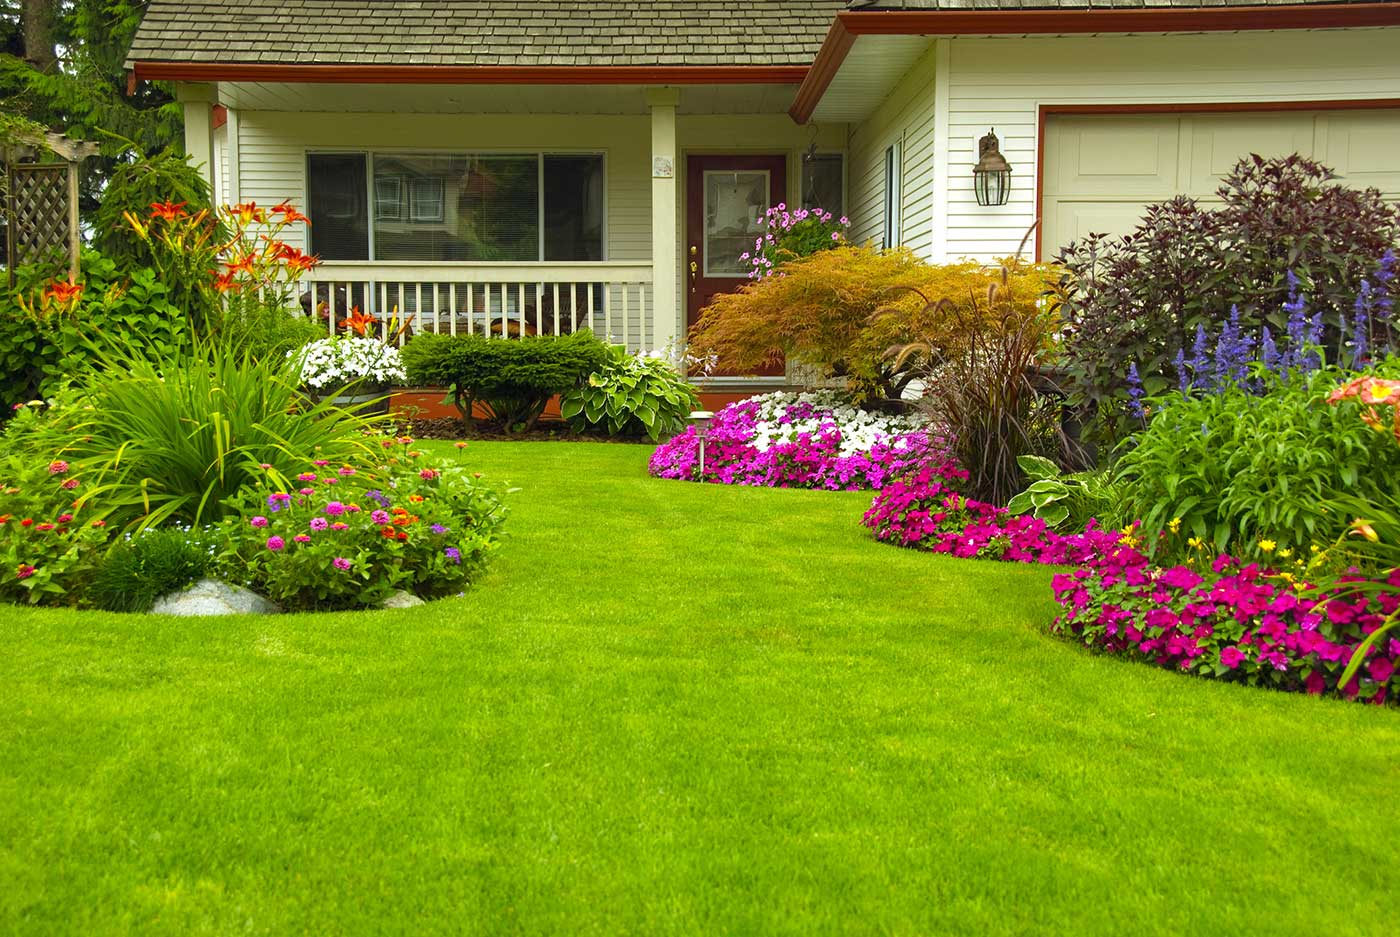 JH Lawn & Landscaping in Brighton